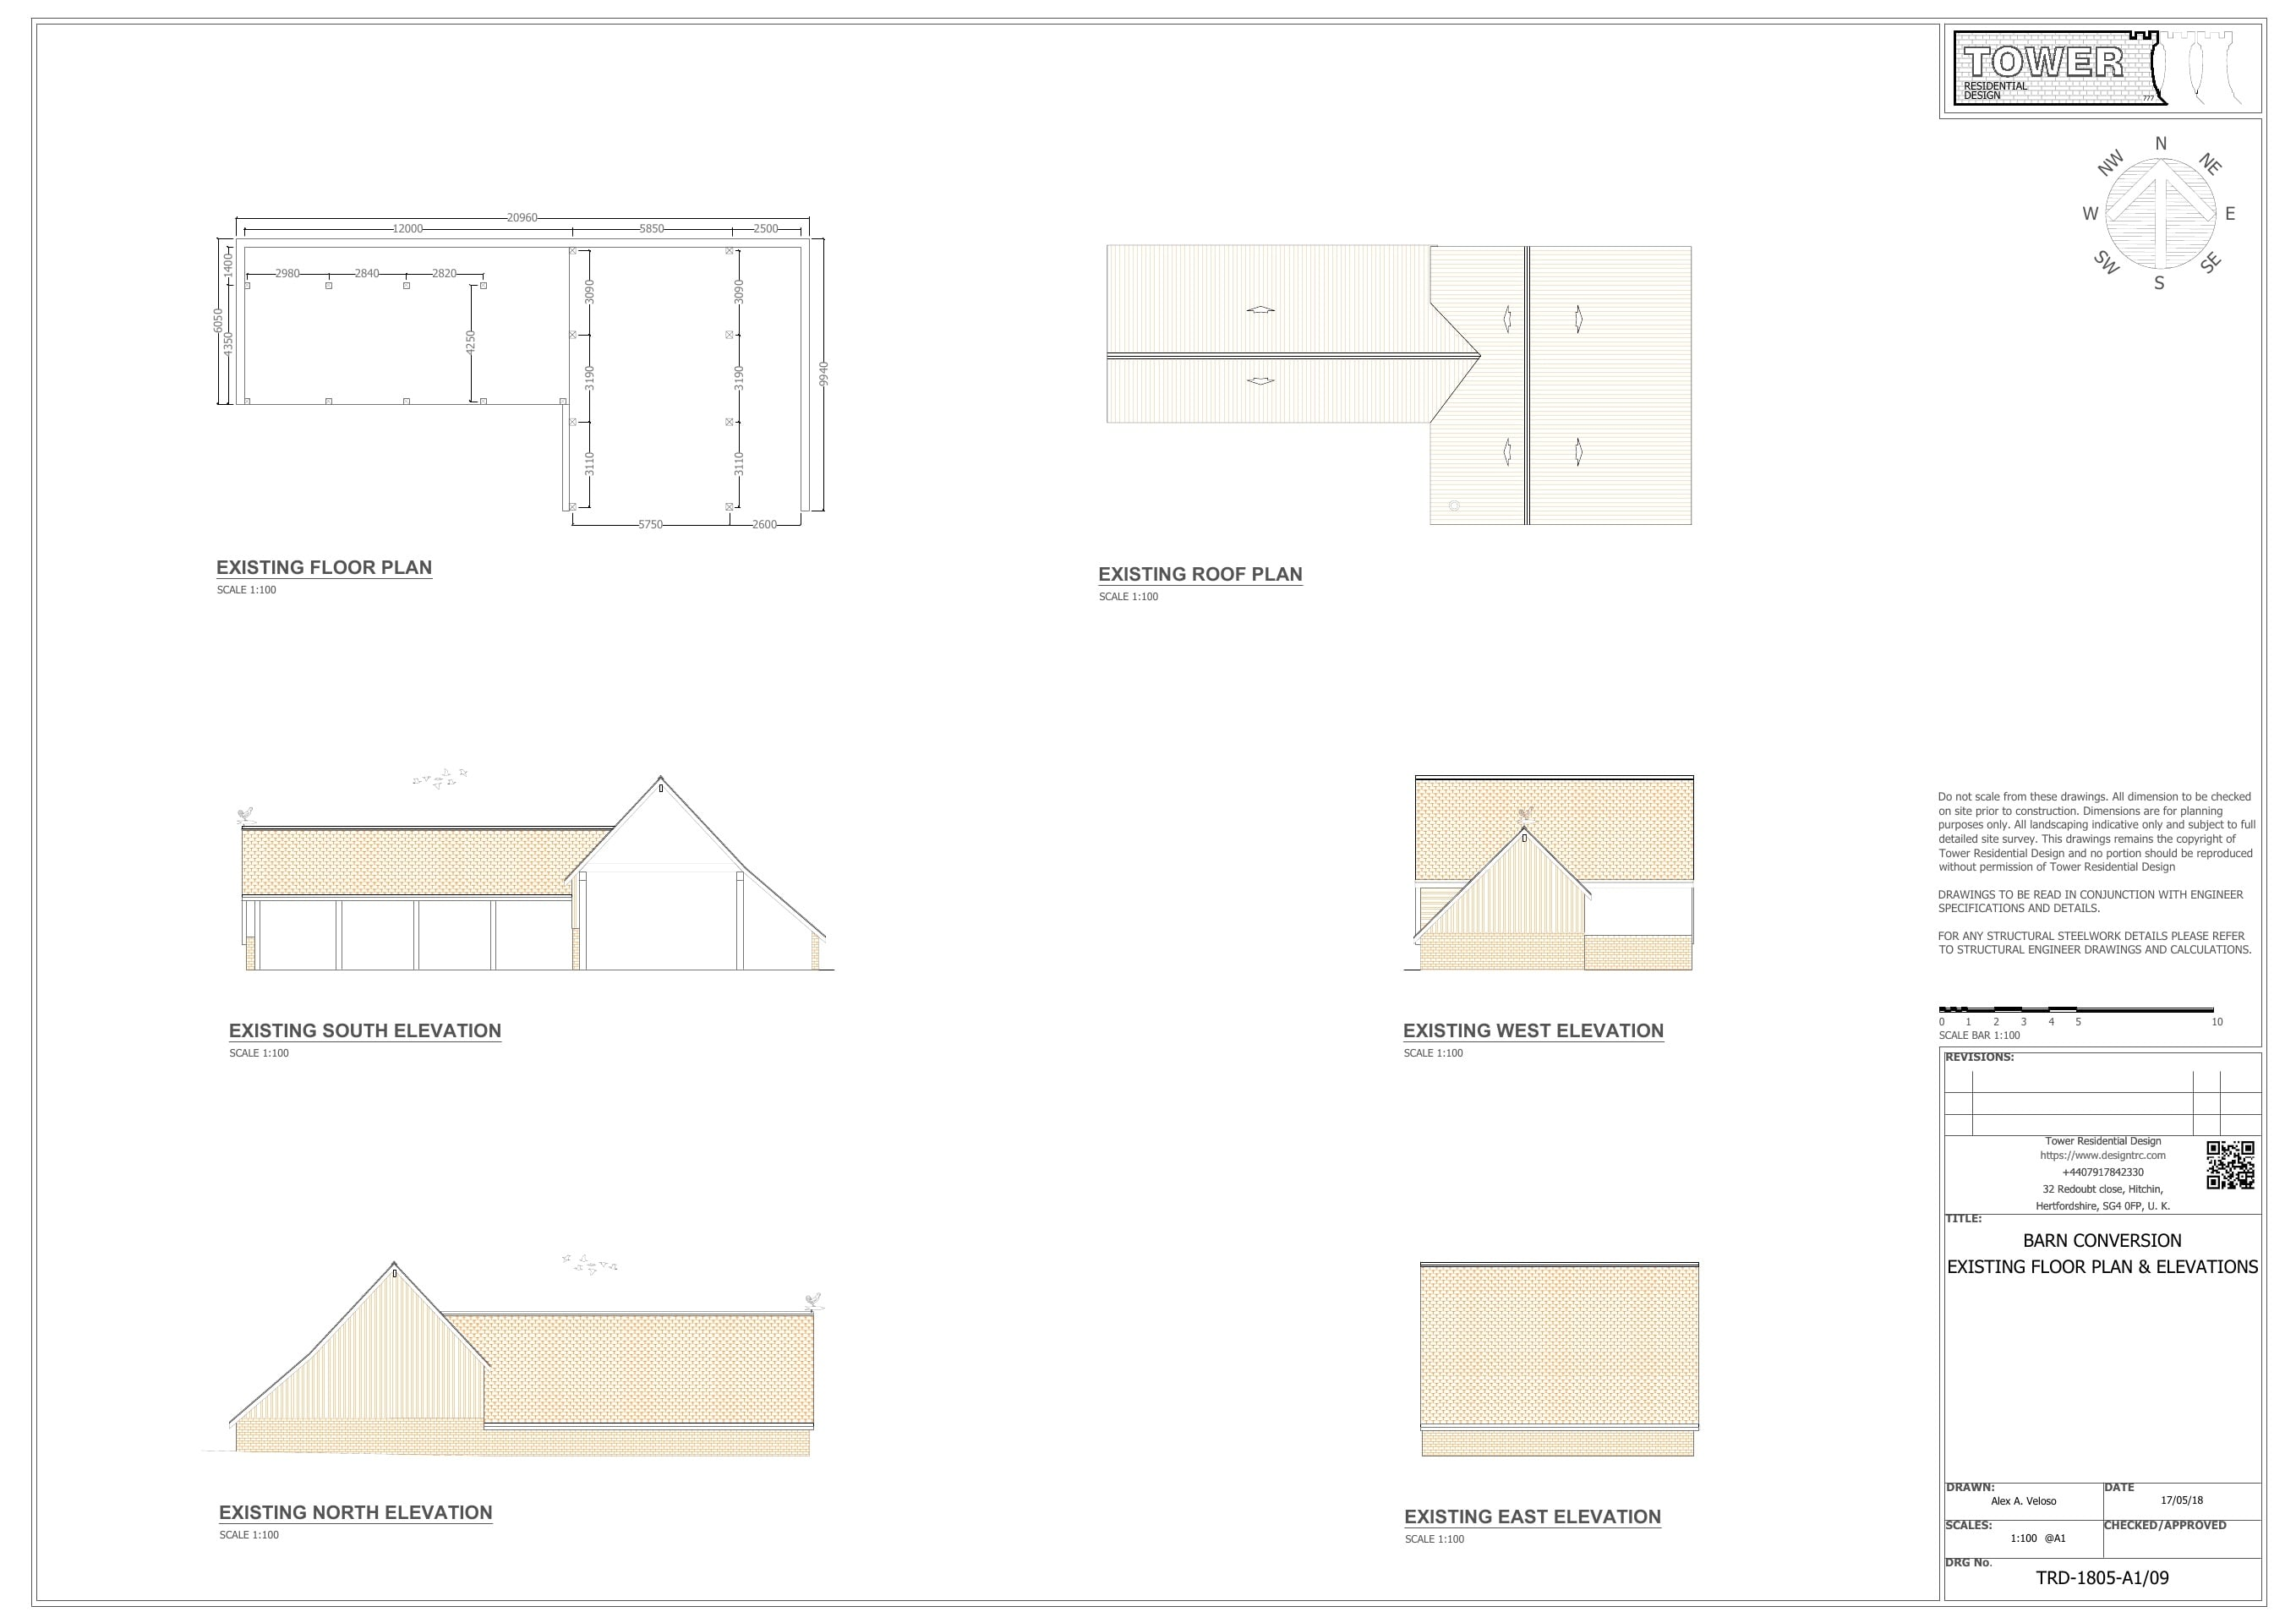 Building Regulation - Barn Conversion Floor Plan